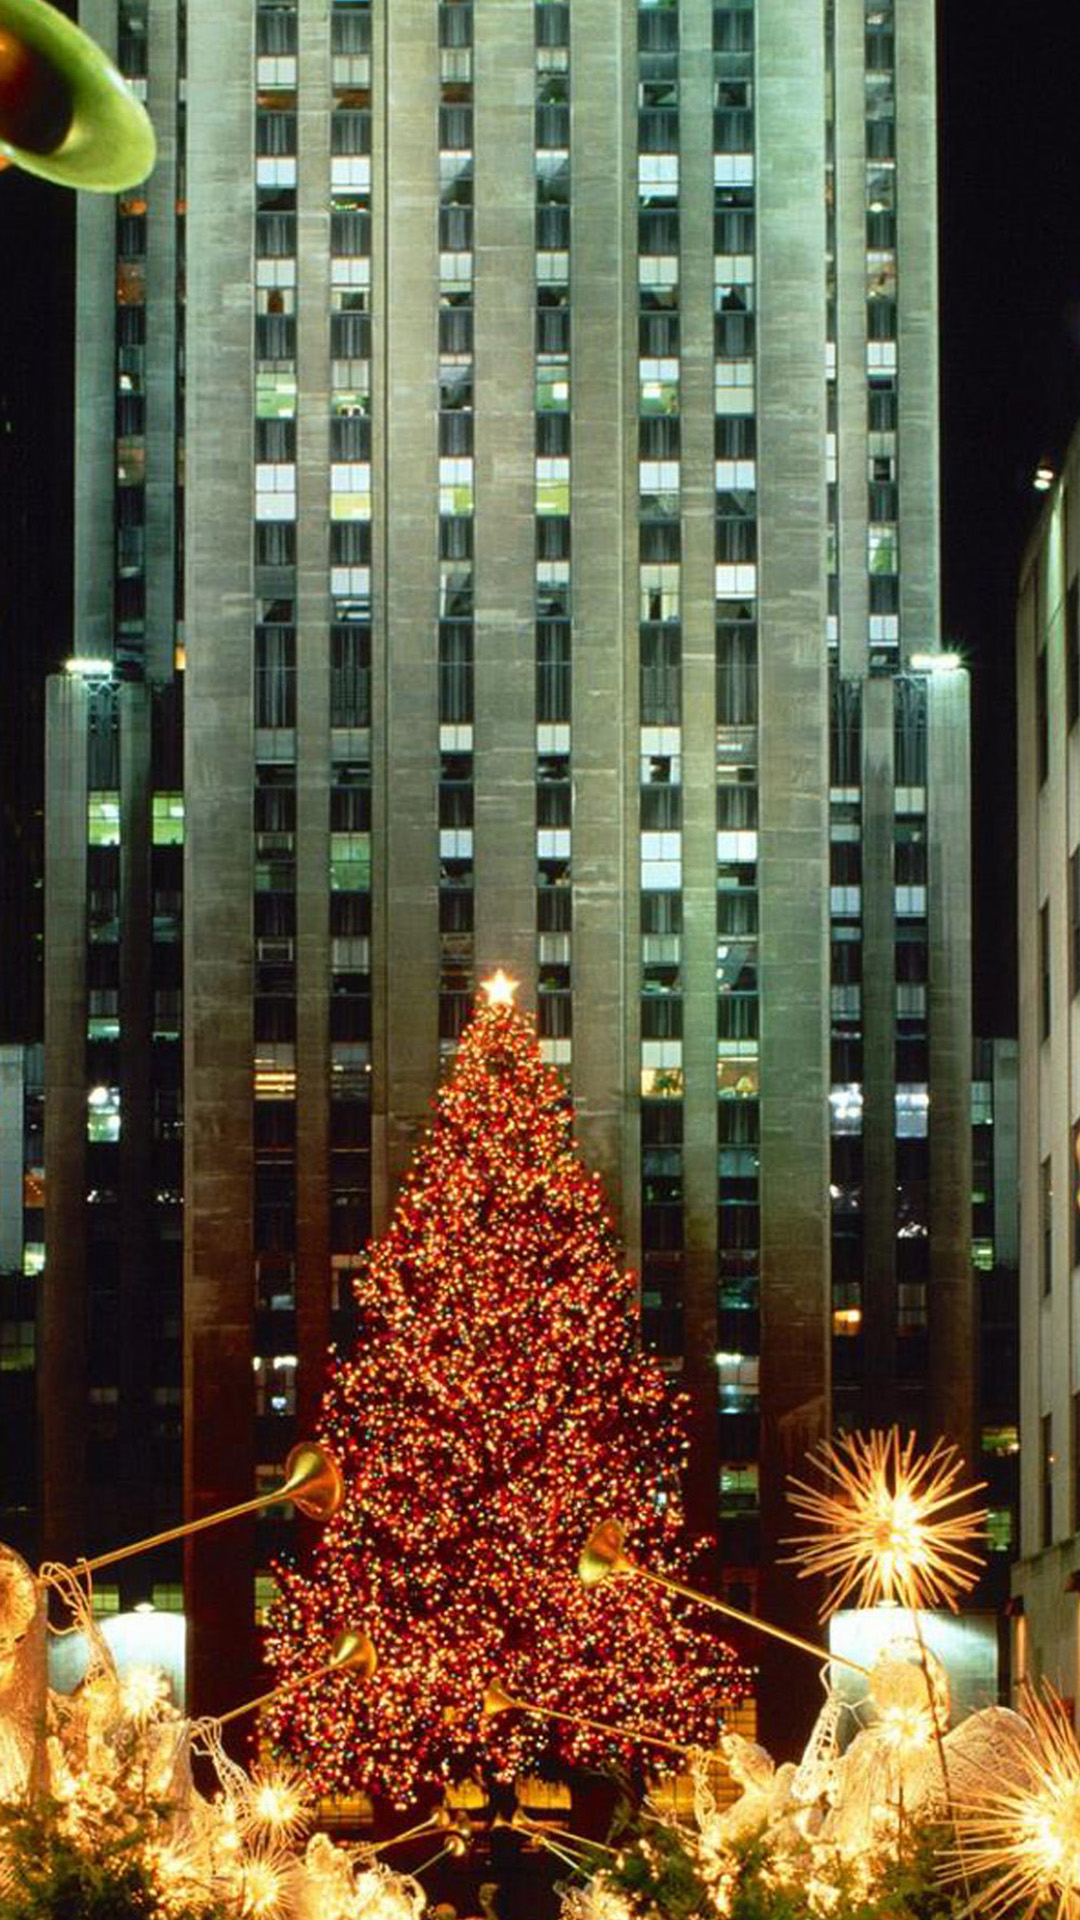 Christmas Tree in New York City